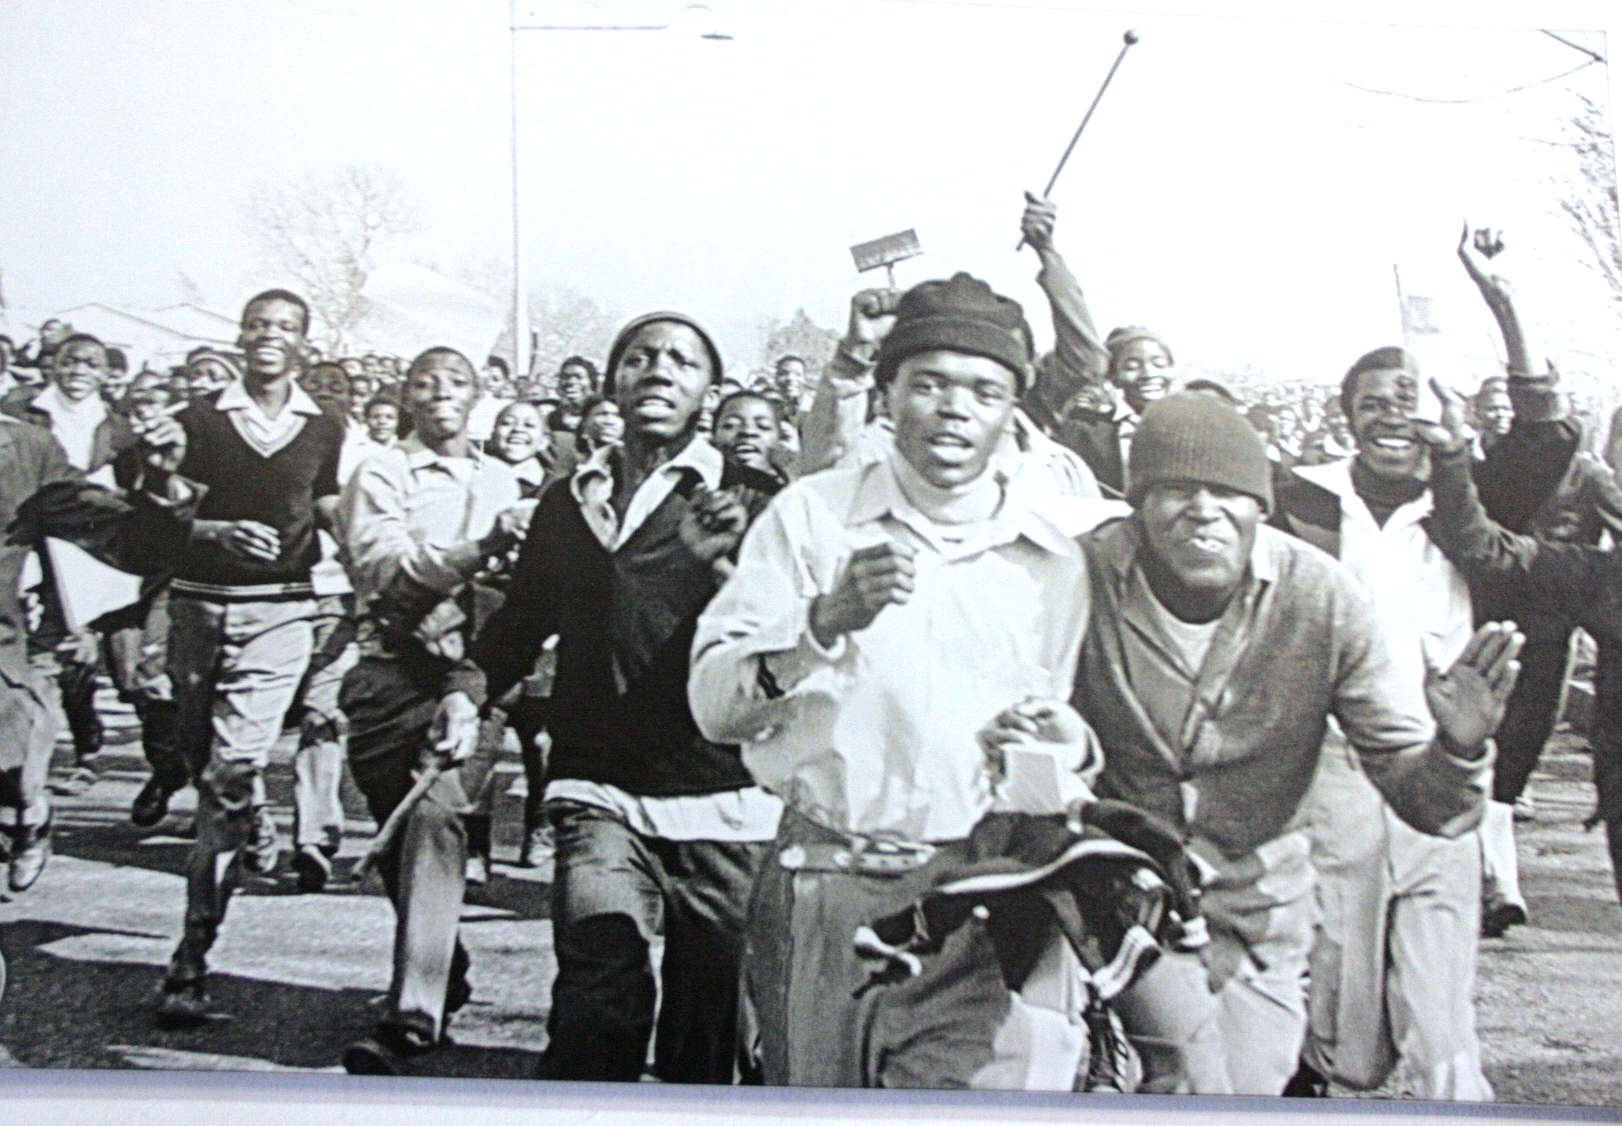 soweto uprising and apartheid in south Dr melville edelstein and south africa's 1976 soweto uprising  of apartheid, as  waves of violent protest soon followed within south africa.